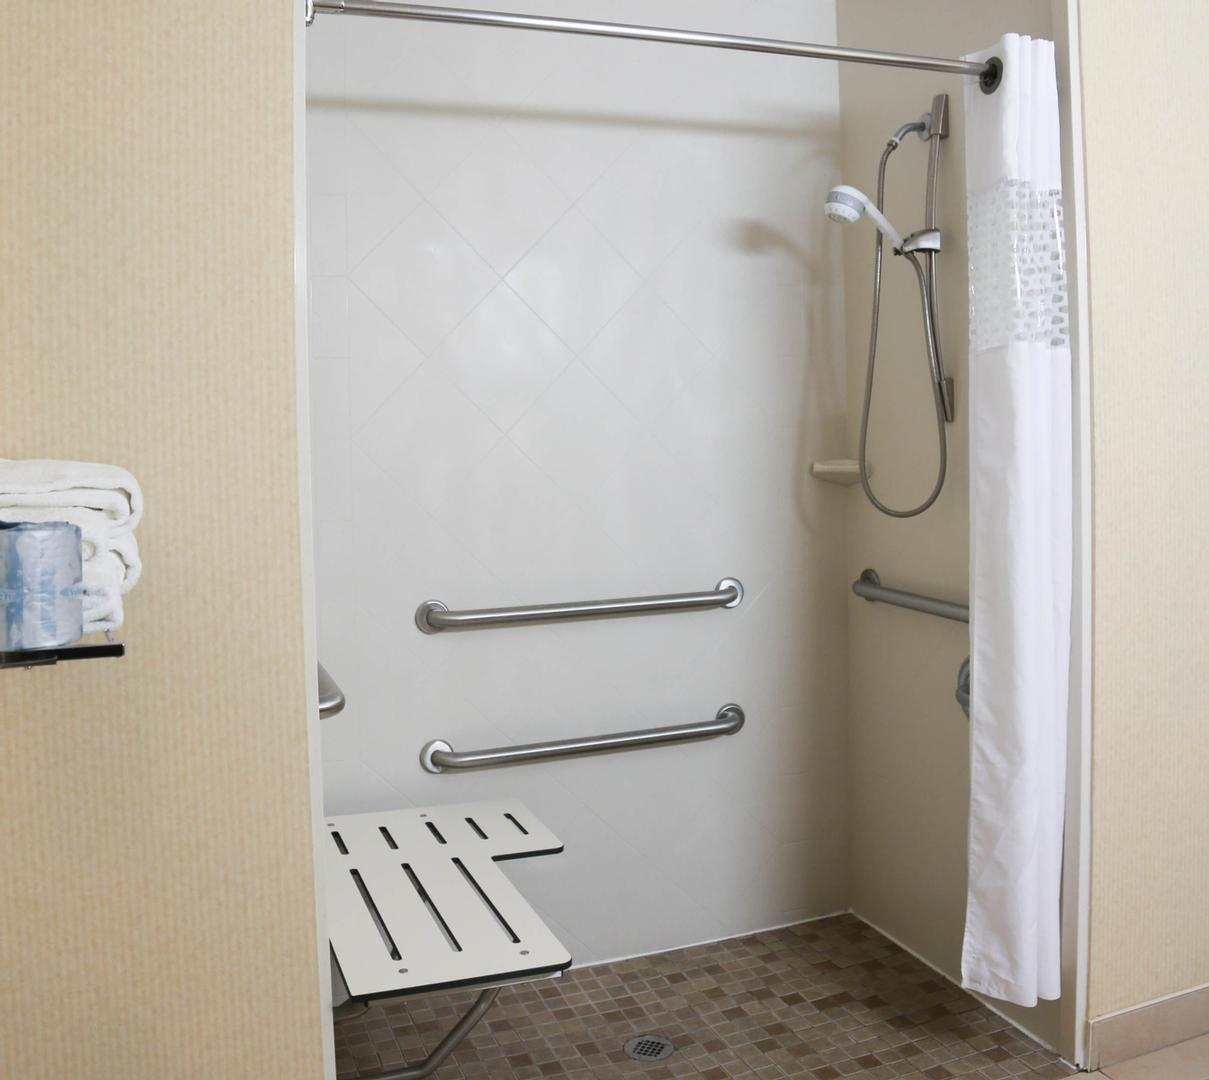 King Accessible -Roll In Shower W/tub Seat 21 of 24